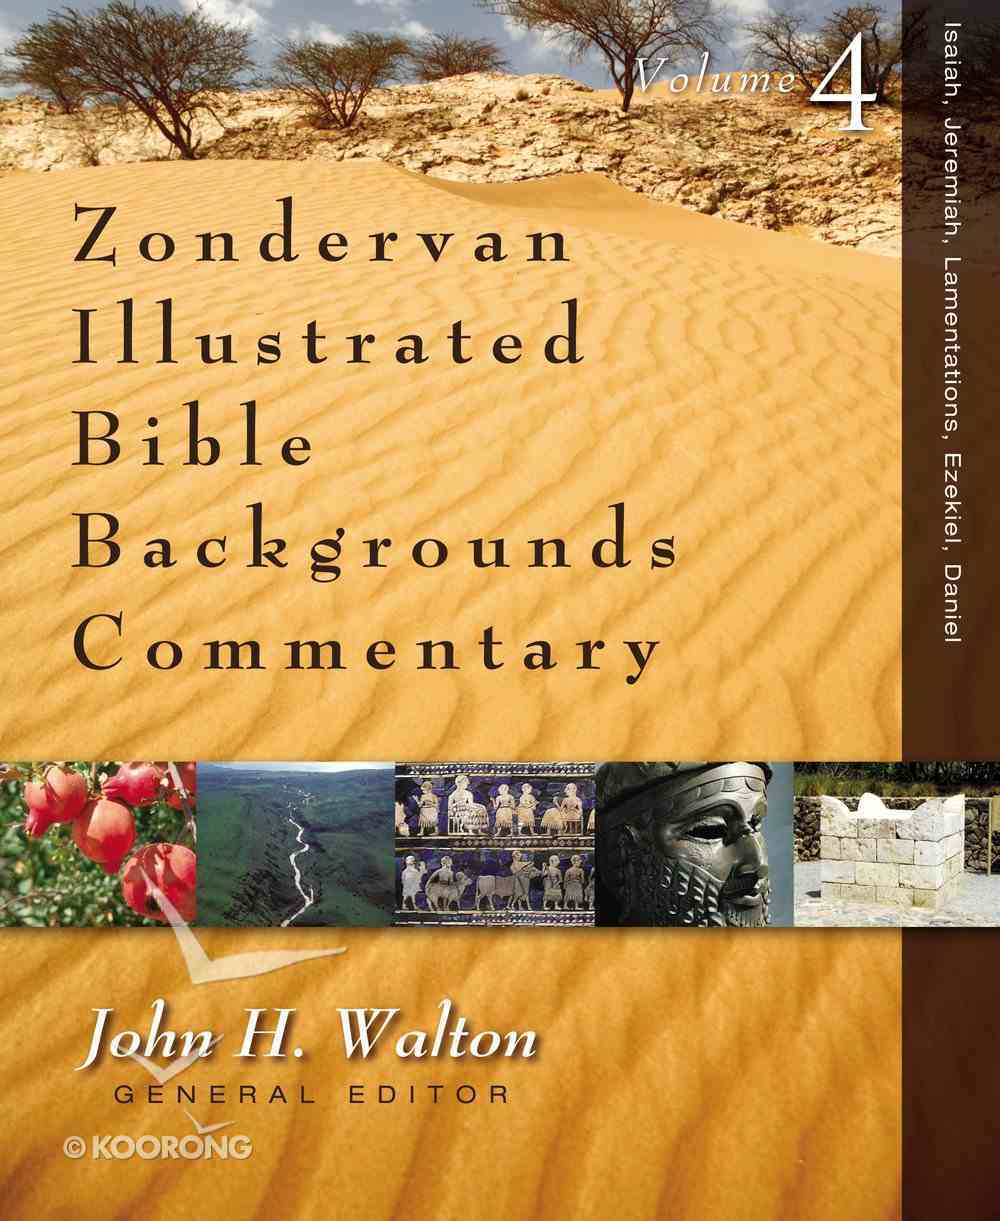 Jeremiah & Lamentations (Zondervan Illustrated Bible Backgrounds Commentary Series) eBook